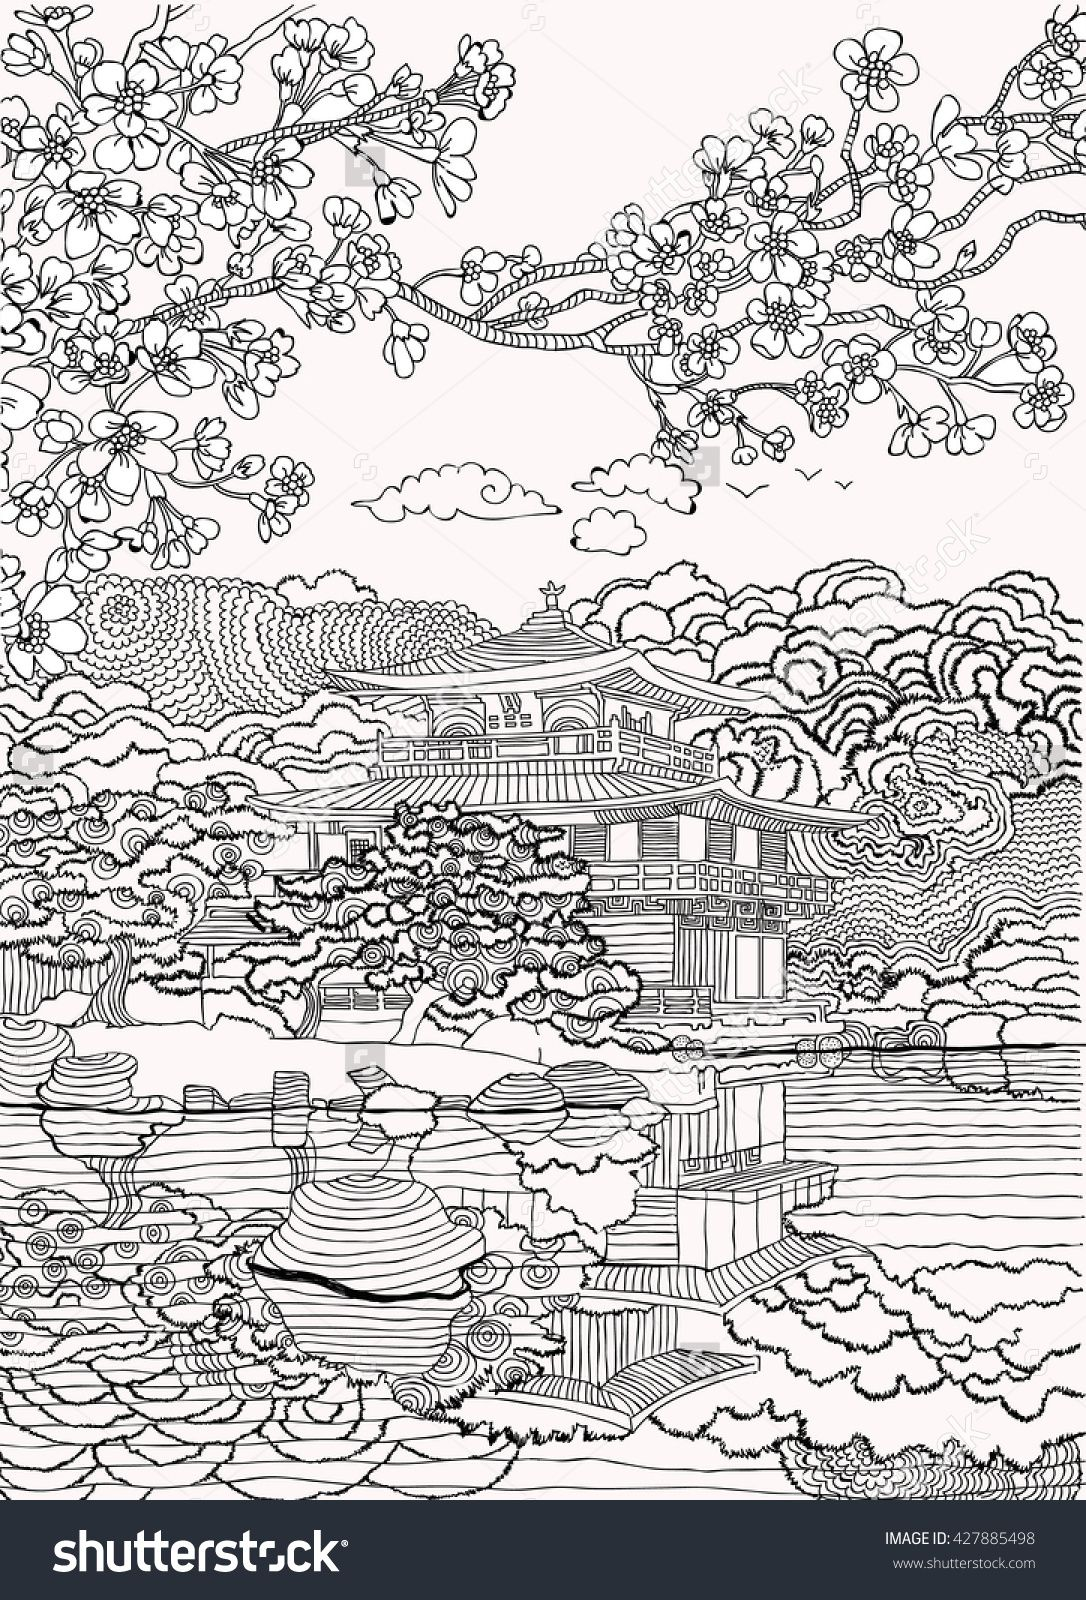 Japan coloring pages Shutterstock 427885498 Adult Coloring